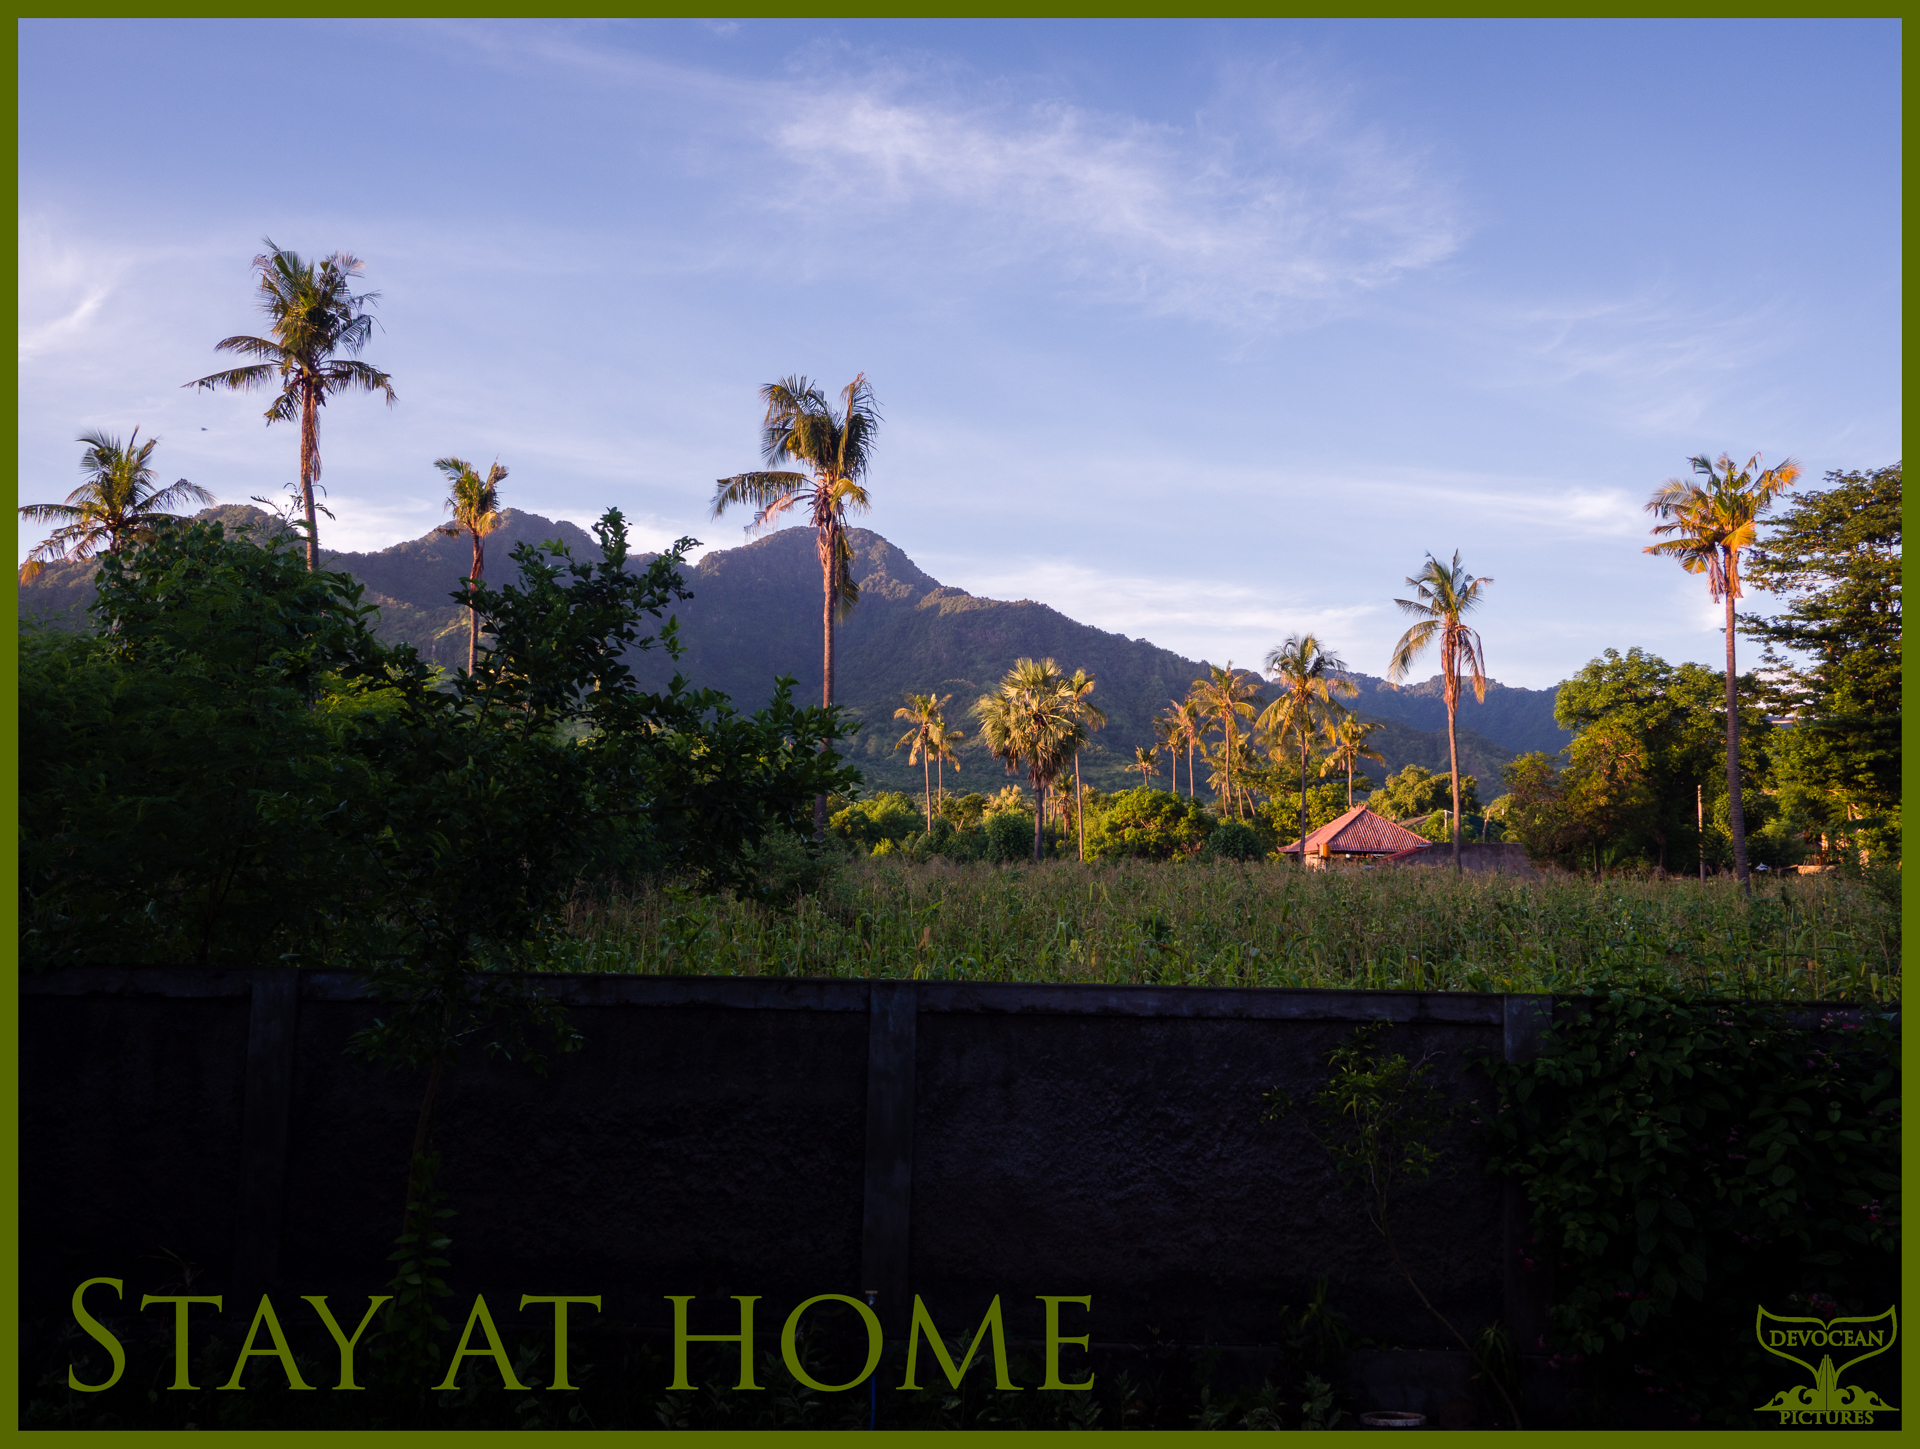 View over the garden wall in Pemuteran, Bali, towards fields, palm trees and the mountains under a blue morning sky. With warm regards: Stay at home.